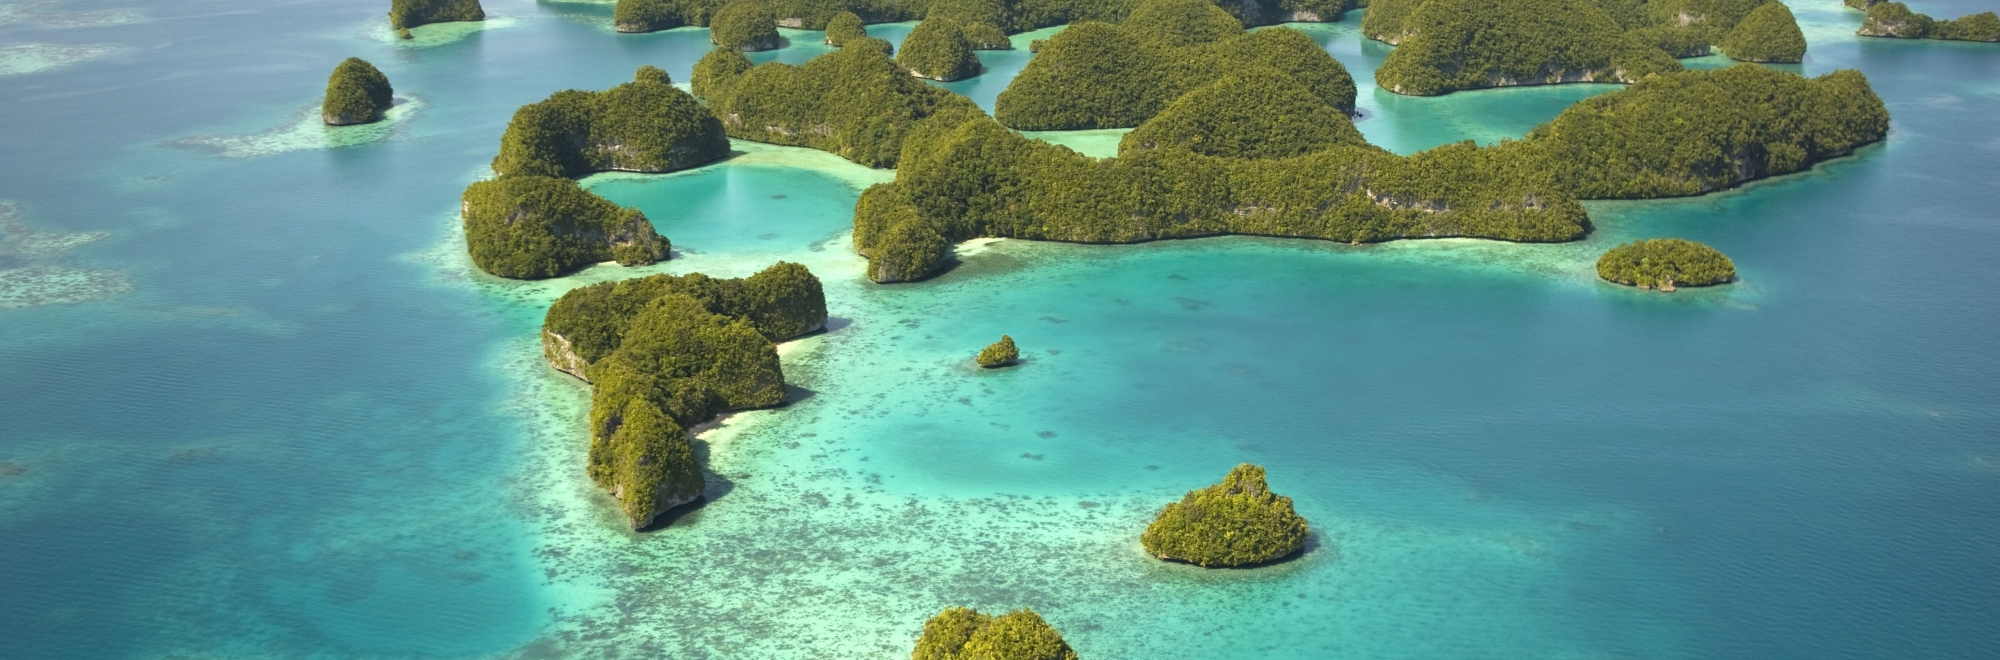 "The ""Palau Pledge"" where visitors to the country sign a stamp in their passports agreeing to respect the environment"